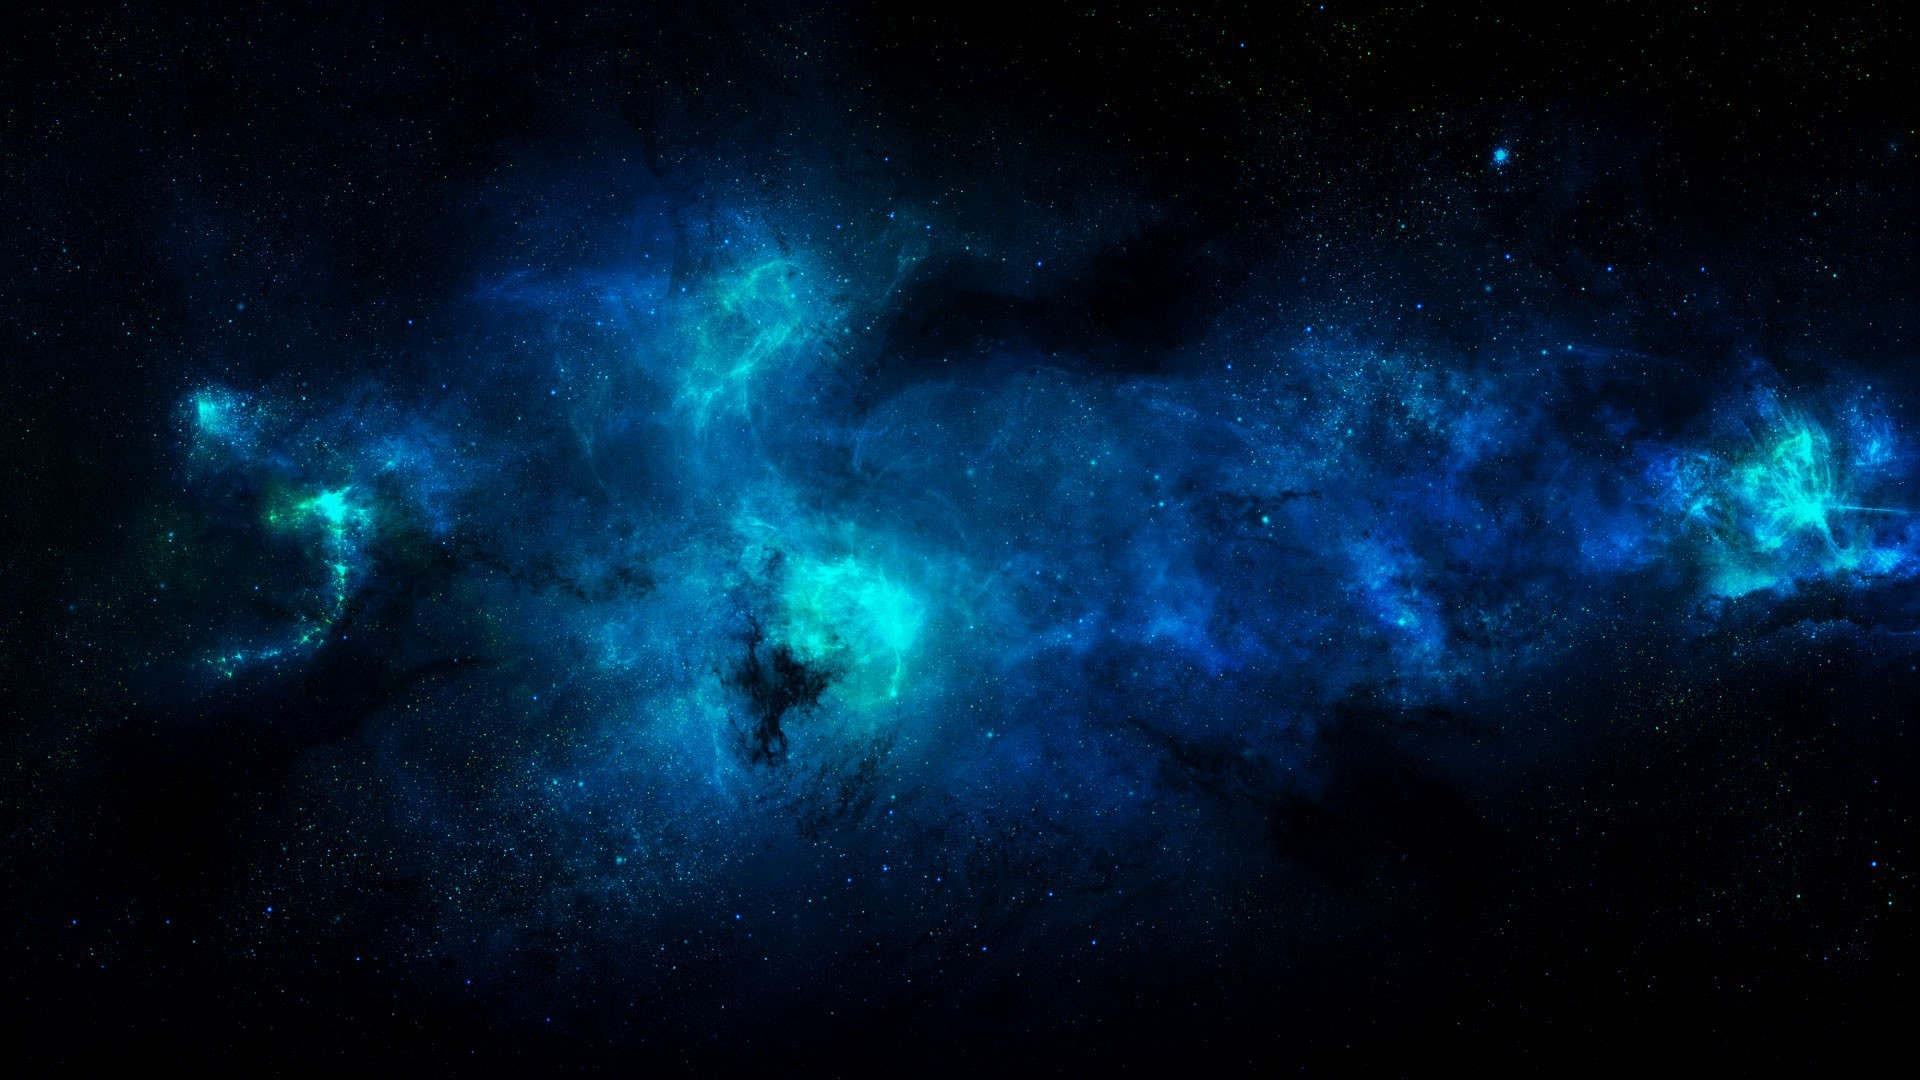 Blue universe wallpaper Space wallpapers